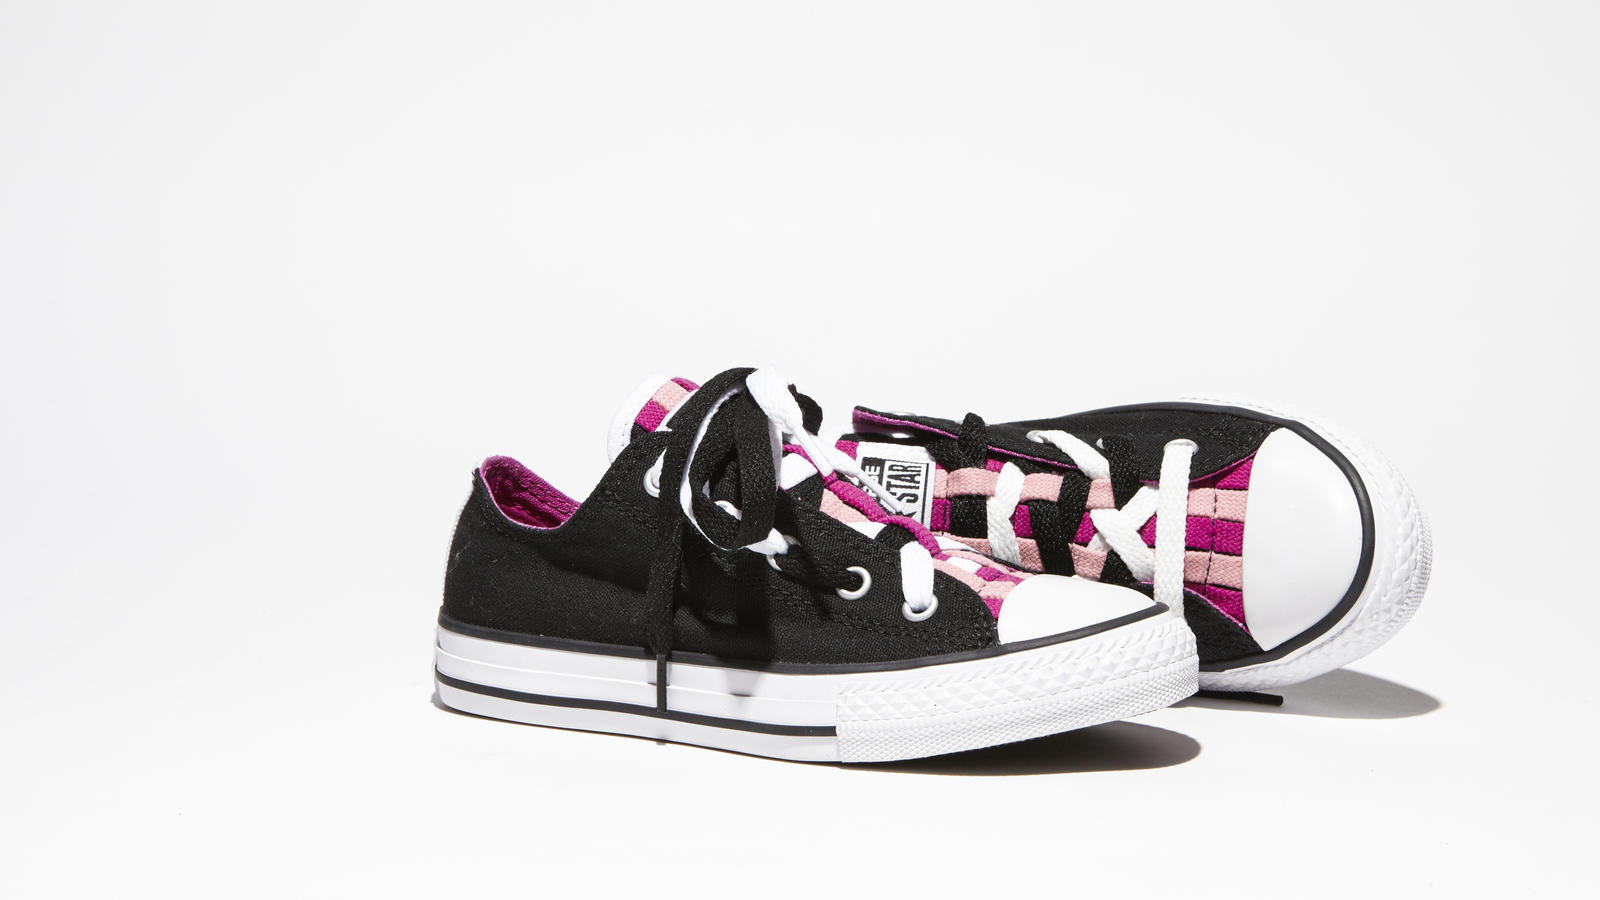 c2301da97441 CONVERSE TAKES DO-IT-YOURSELF TO THE NEXT LEVEL WITH THE KIDS CHUCK ...